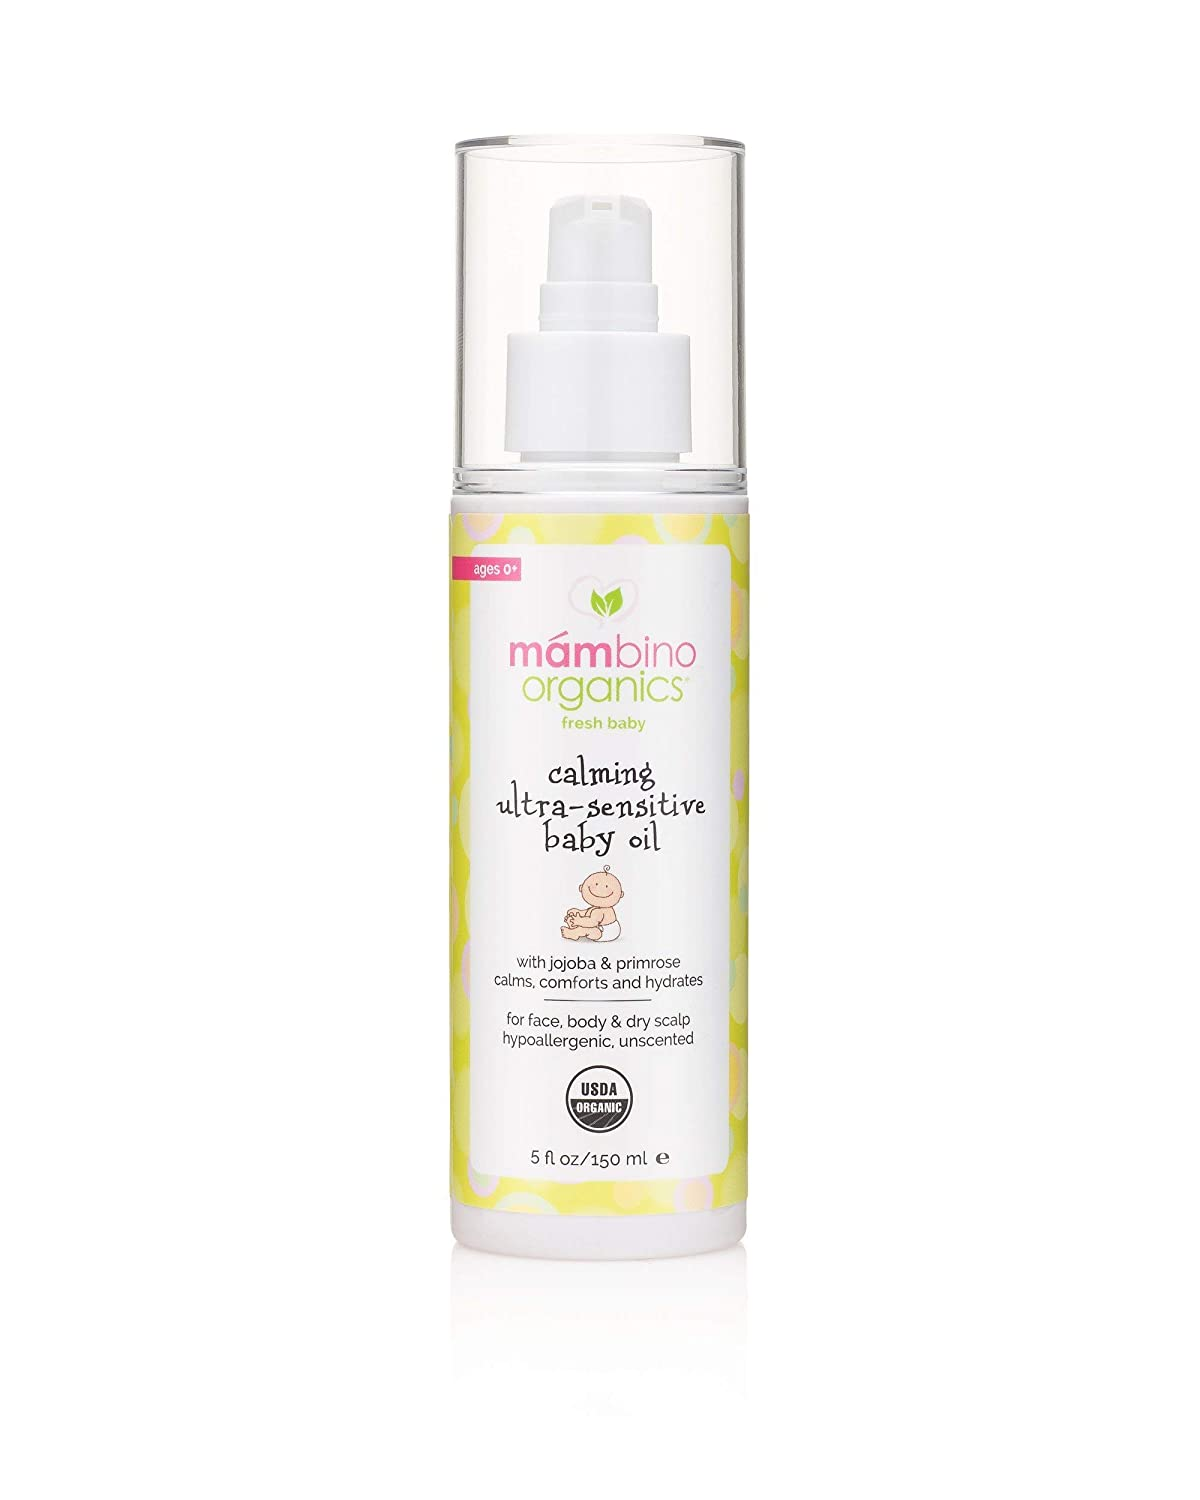 Mambino Organics Calming Ultra-Sensitive Soothing Oil Unscented – All Natural Fragrance Free with Jojoba & Evening Primrose Oil - 5 Fluid Ounces